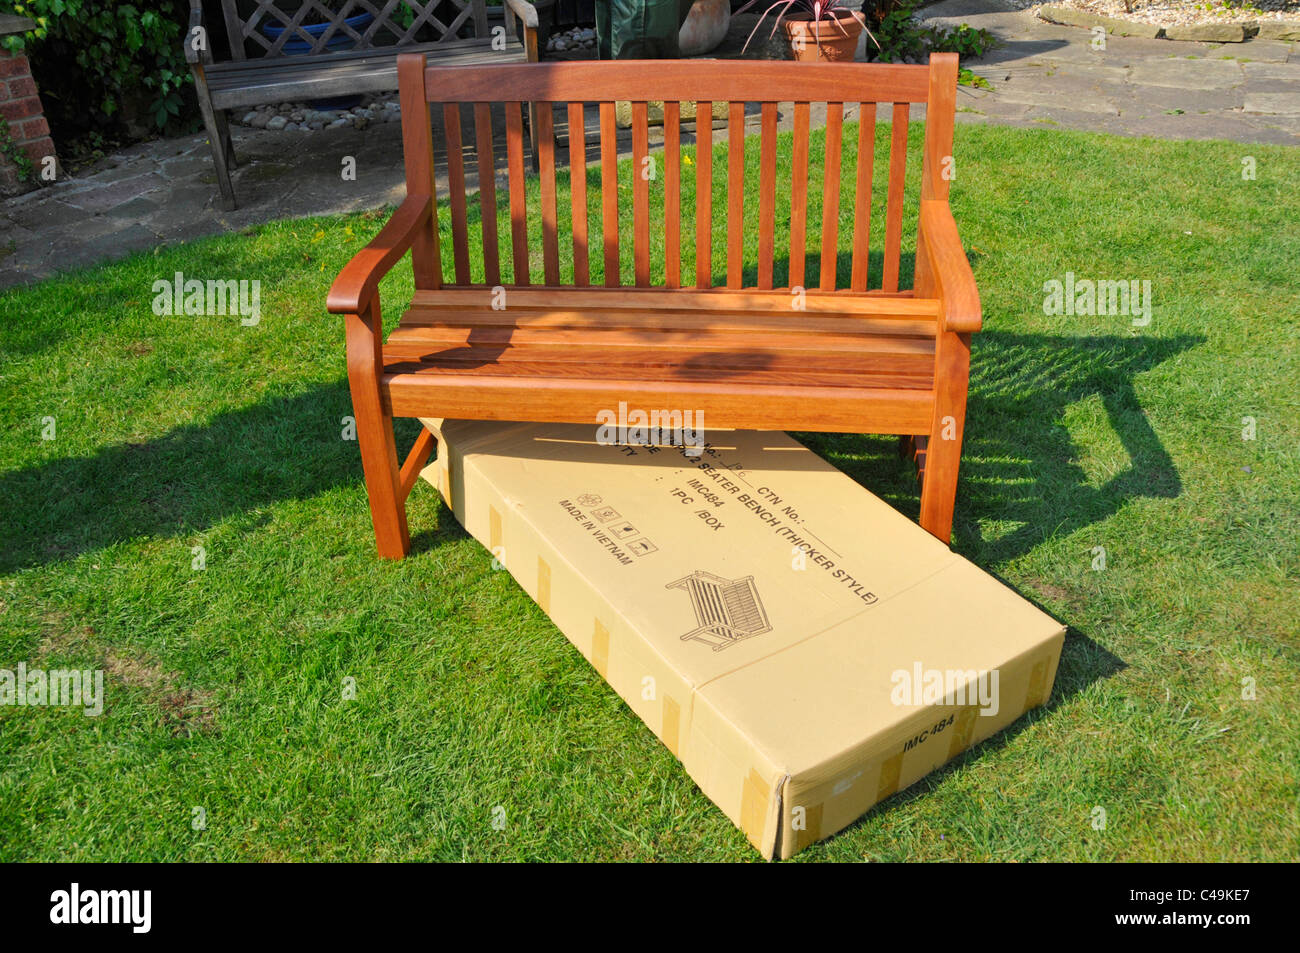 Imported self assembly hardwood garden seat and empty box with import markings Stock Photo